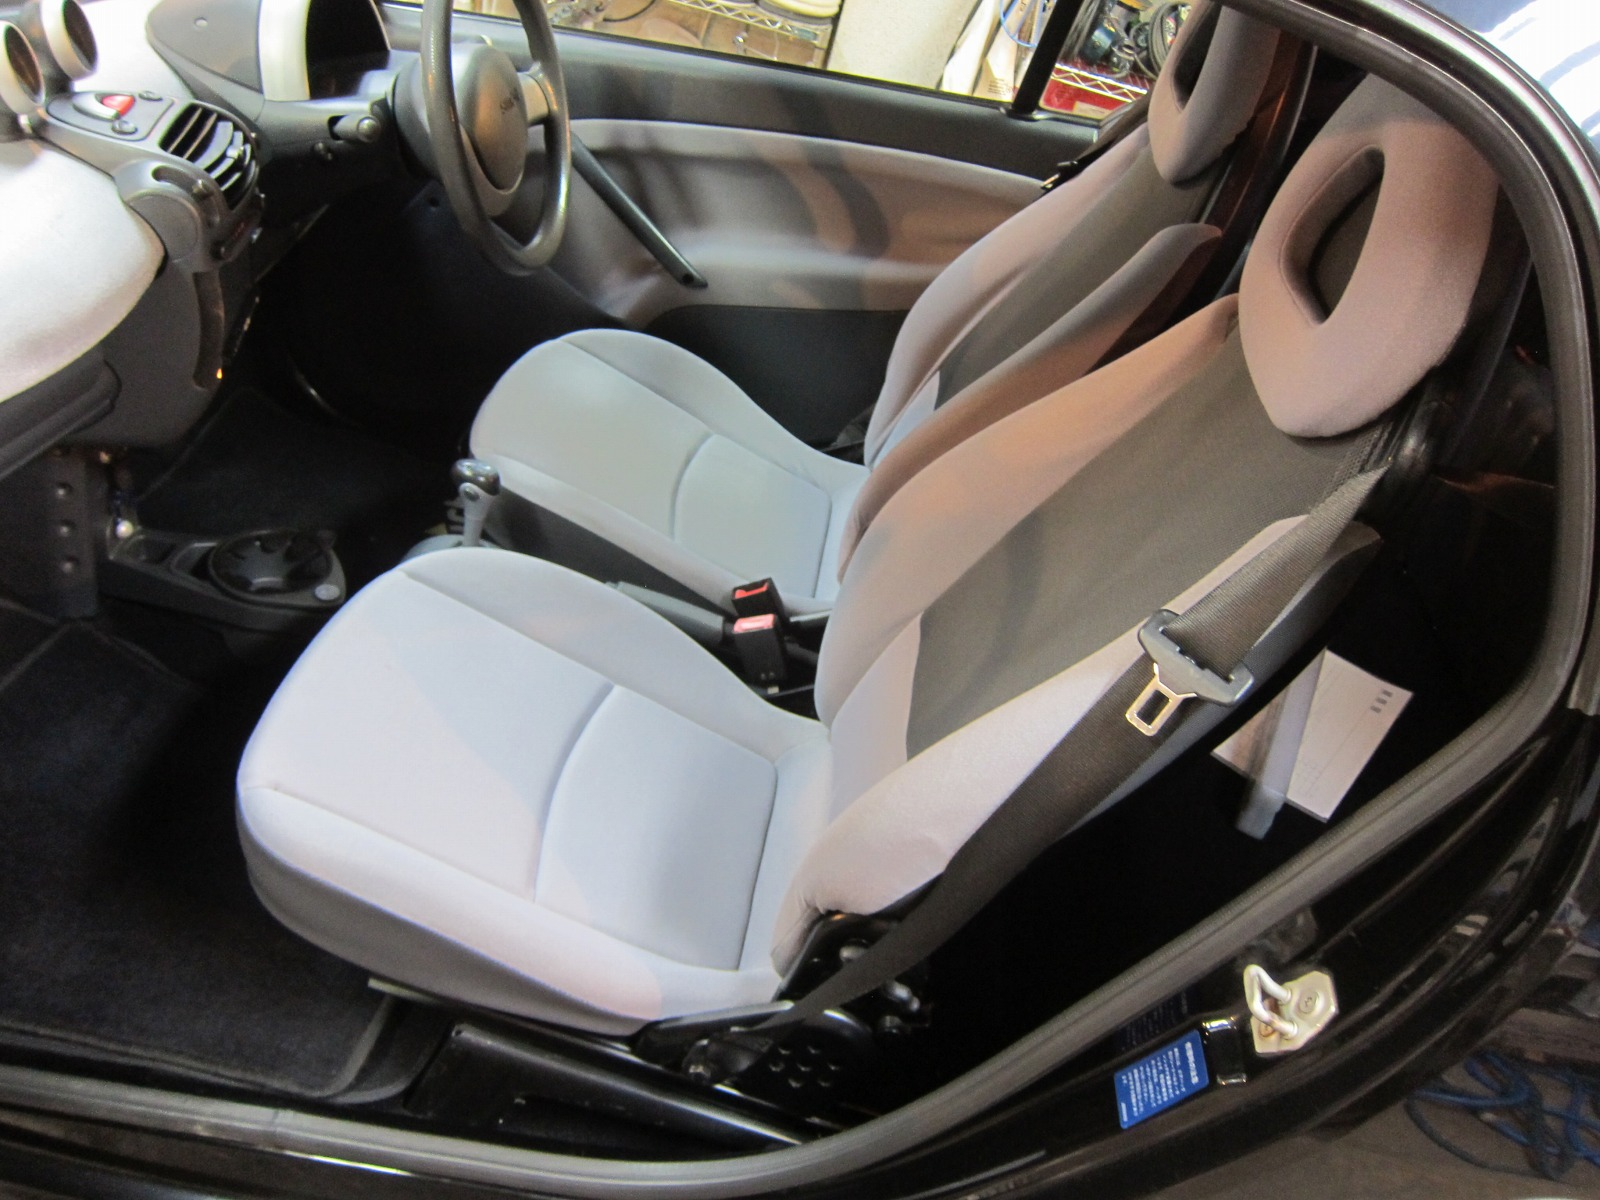 20150405-smart-fortwo-20